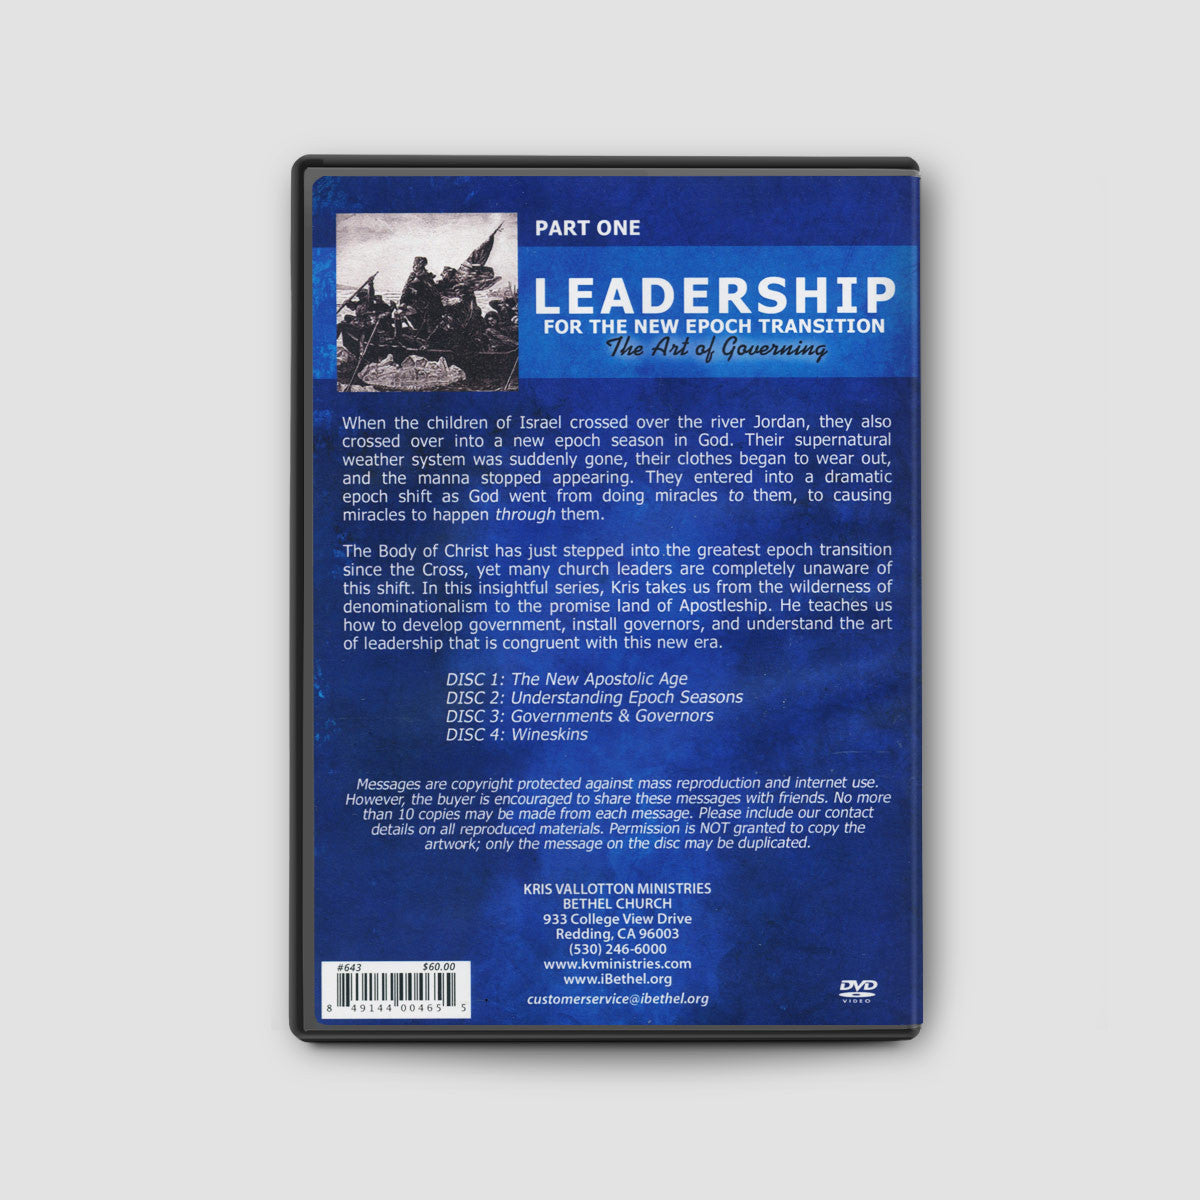 Leadership for the New Epoch Transition Part 1